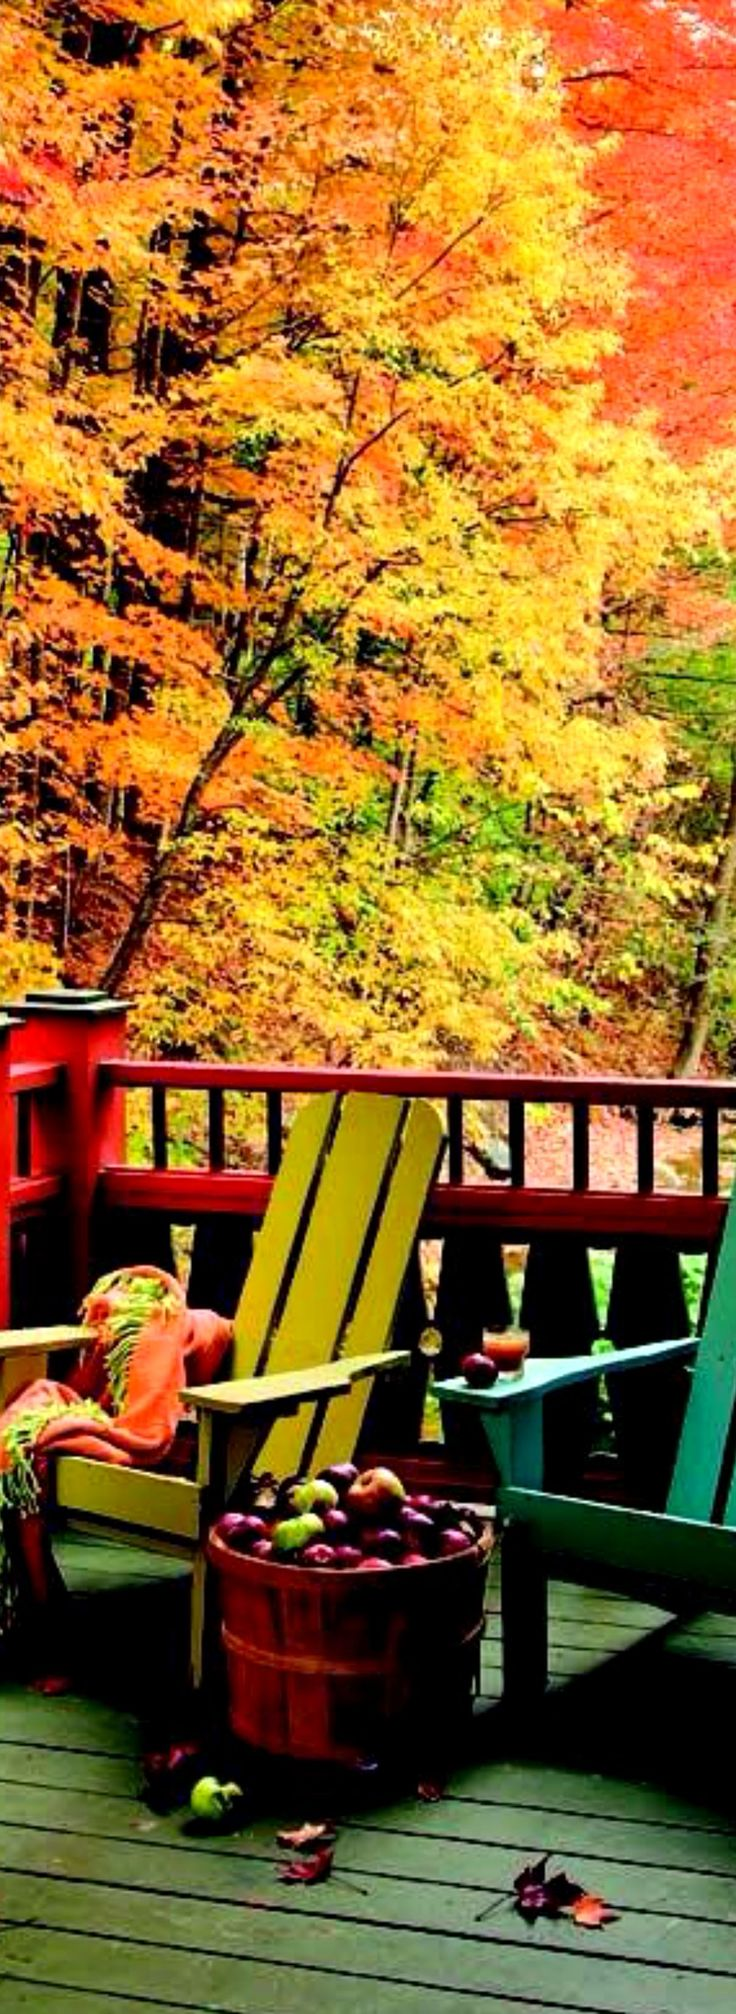 Fall and Apple Hill just go together.